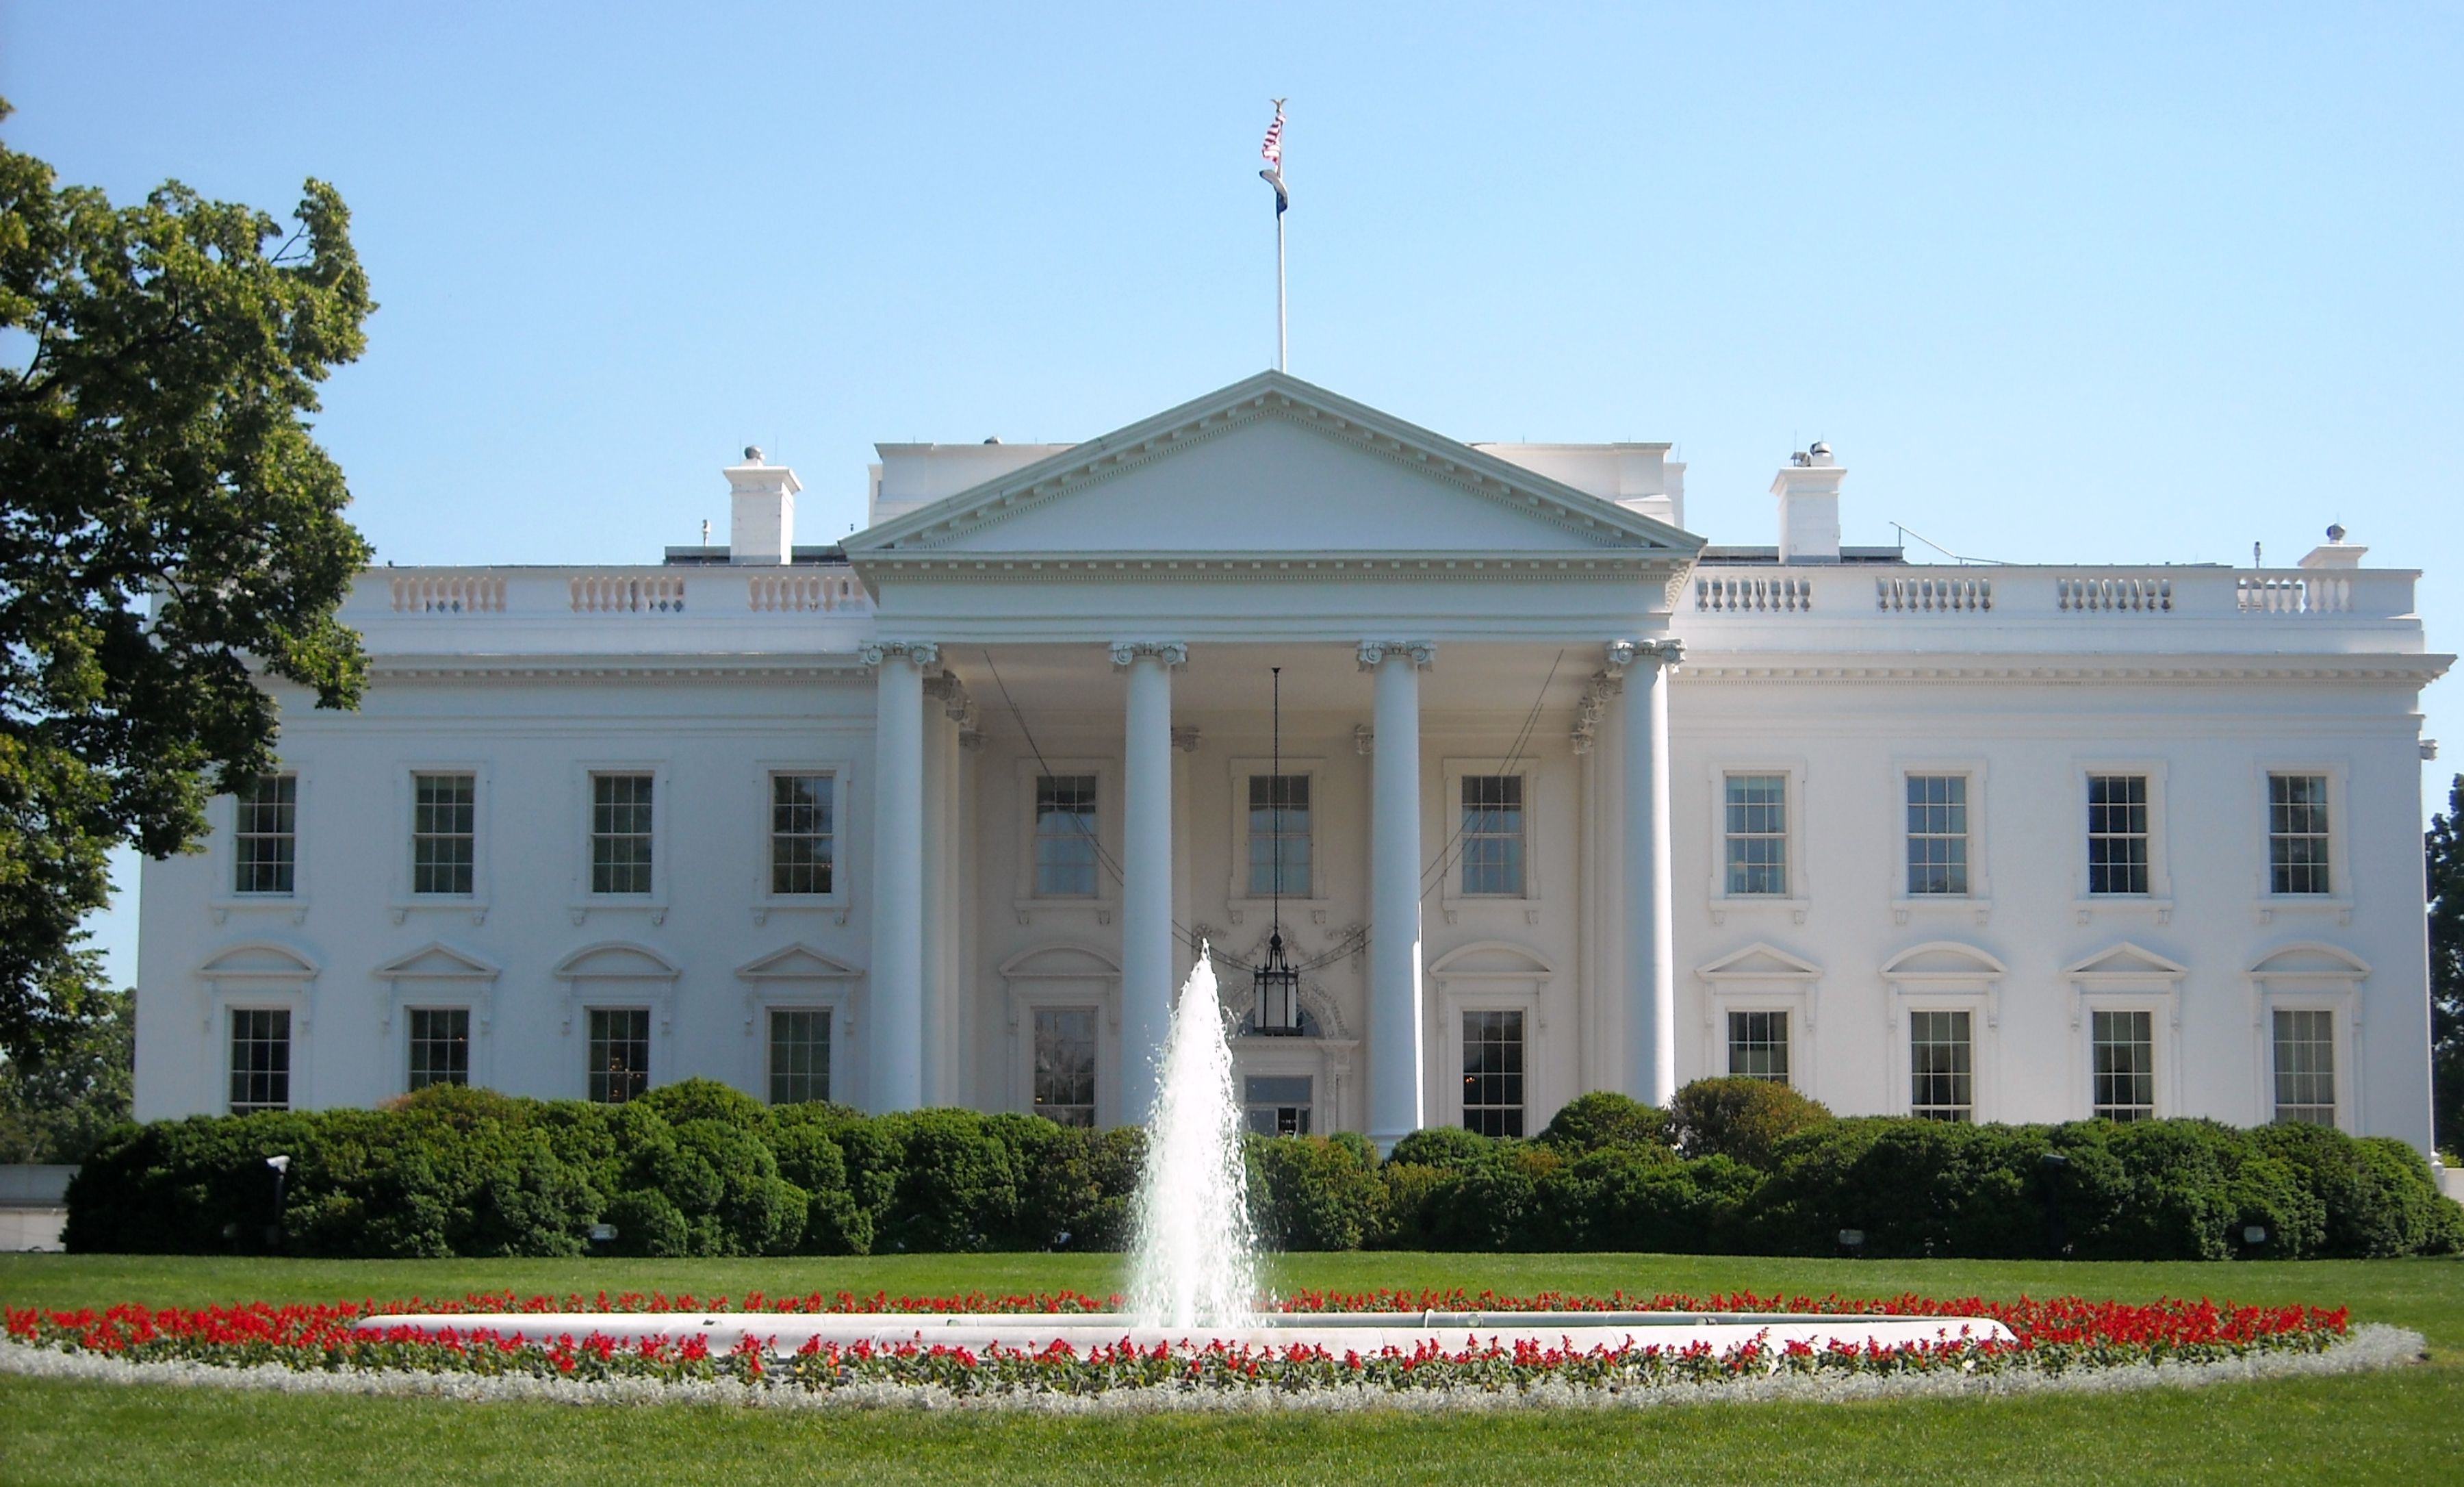 The White House - The President of the United States of America